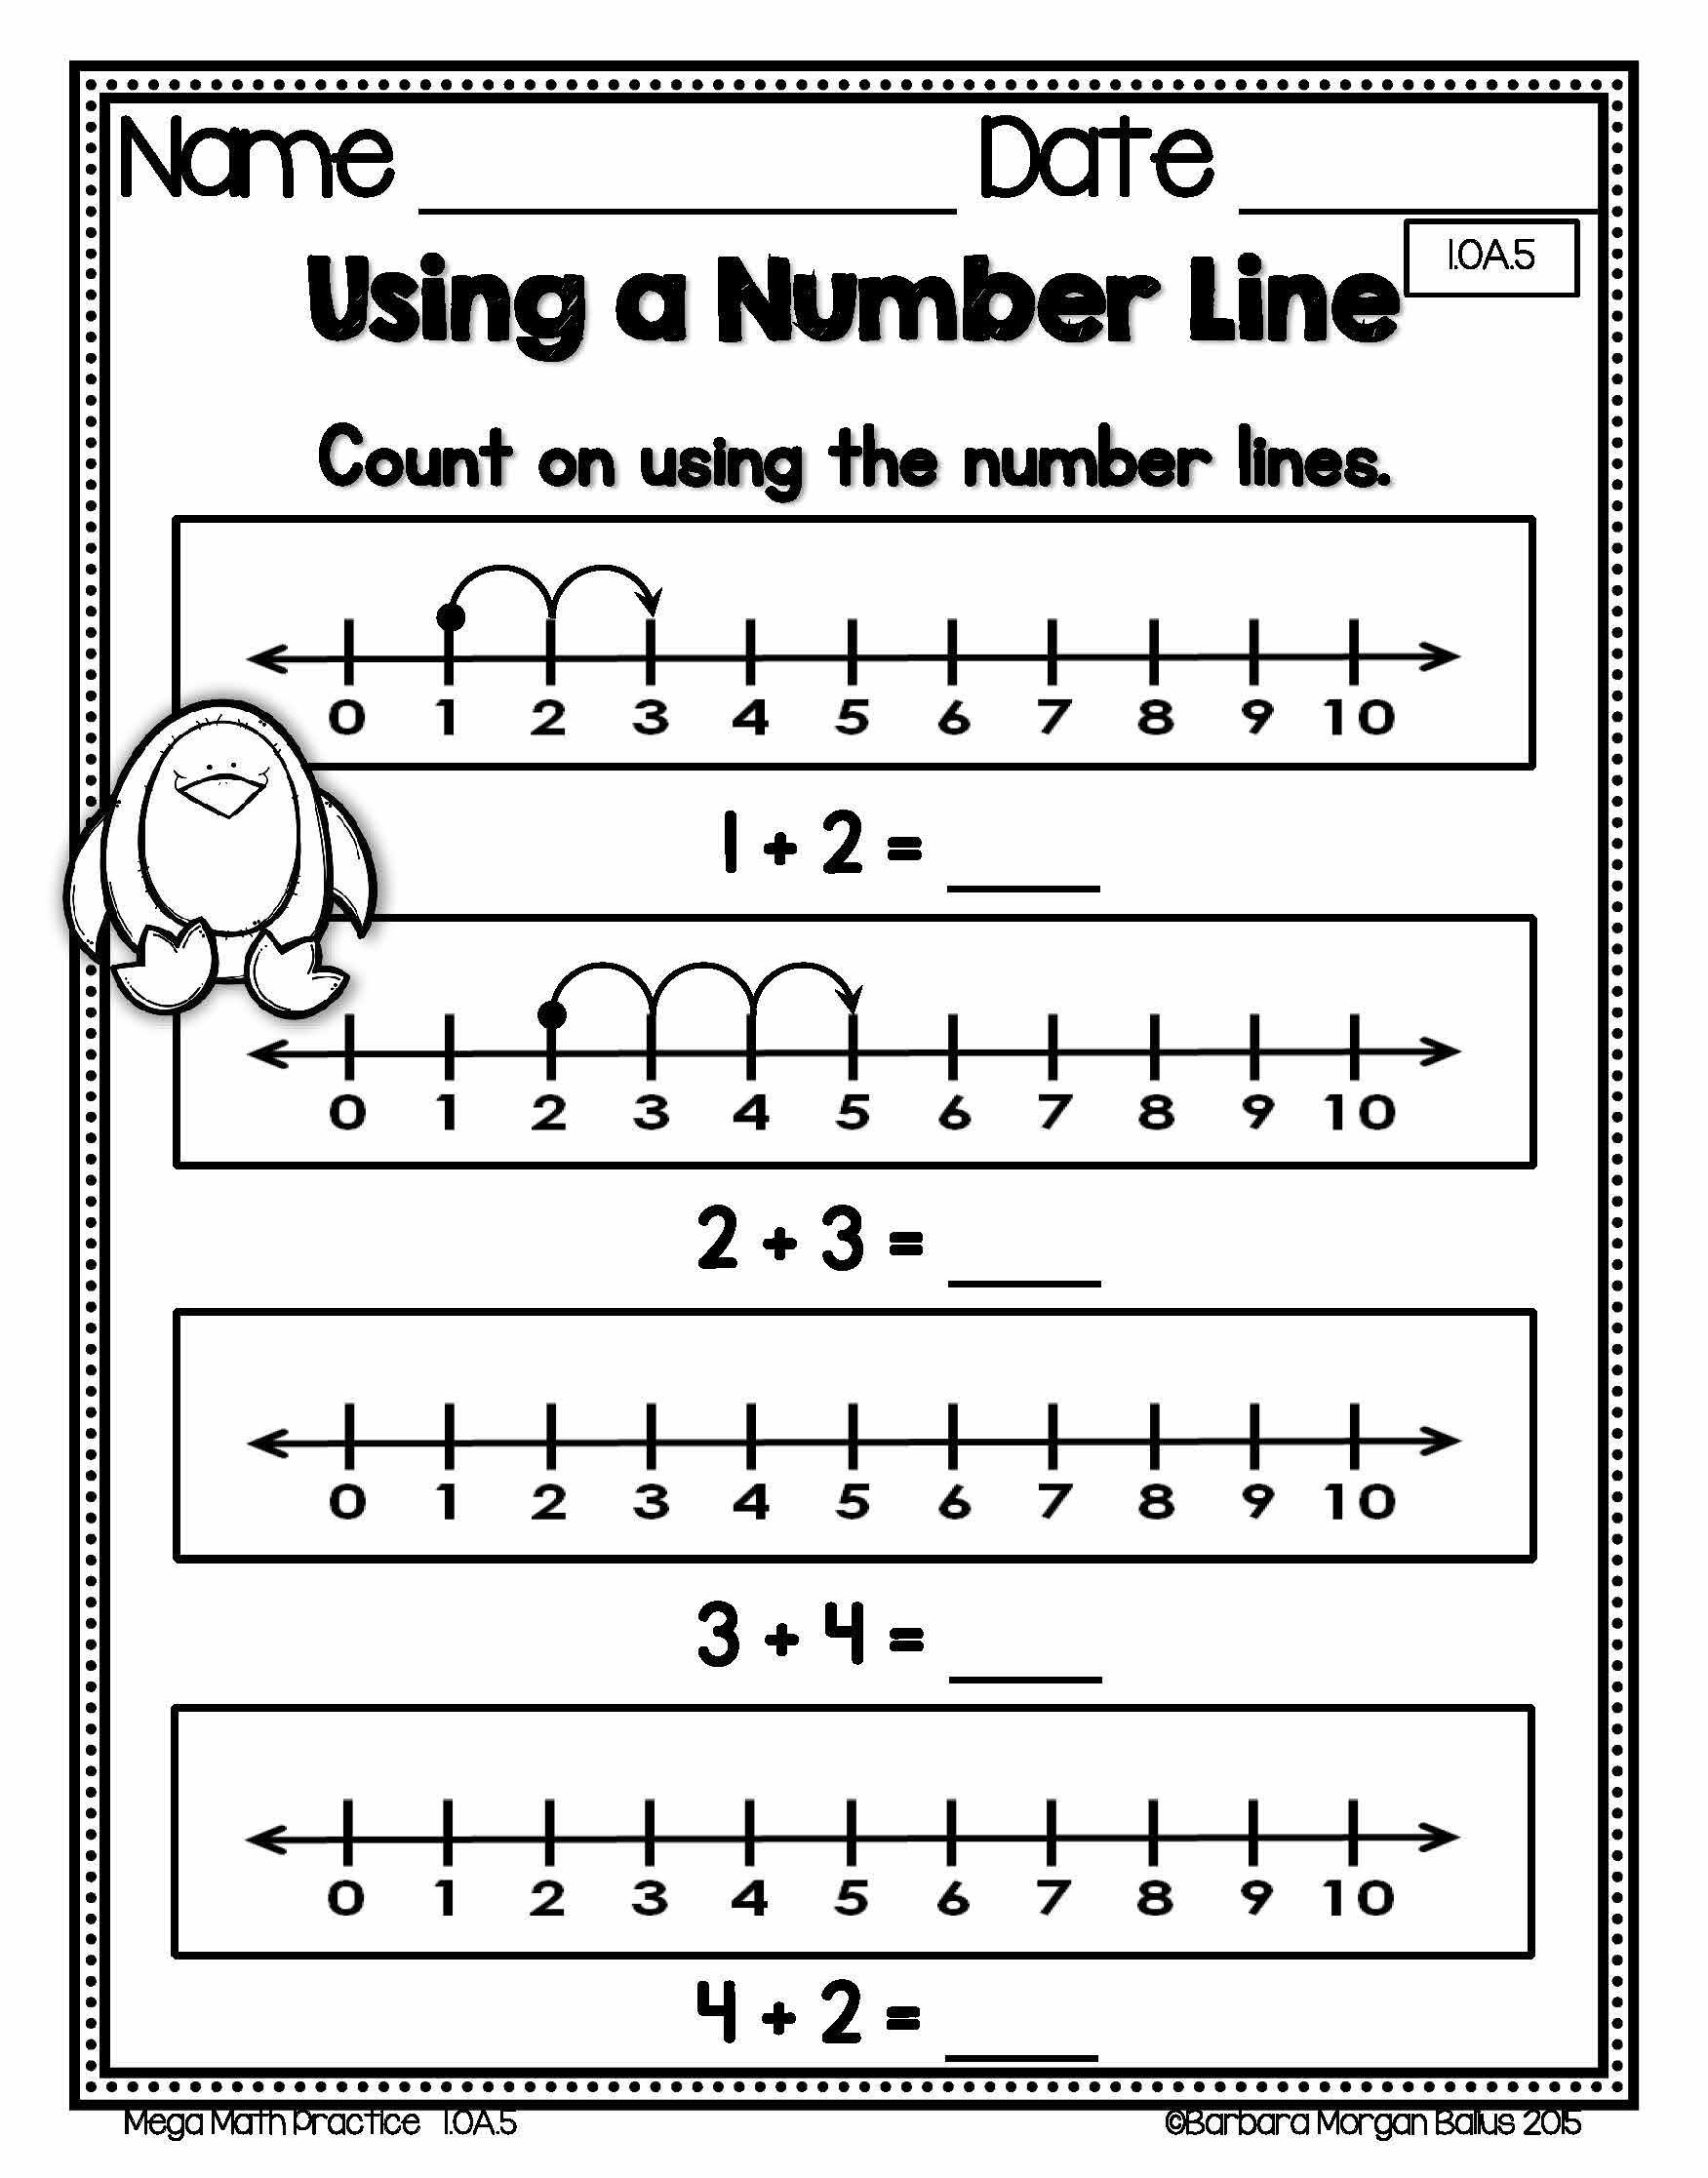 How To Use A Number Line In First Grade Number Sense Practice For The 1 Oa 5 Standard